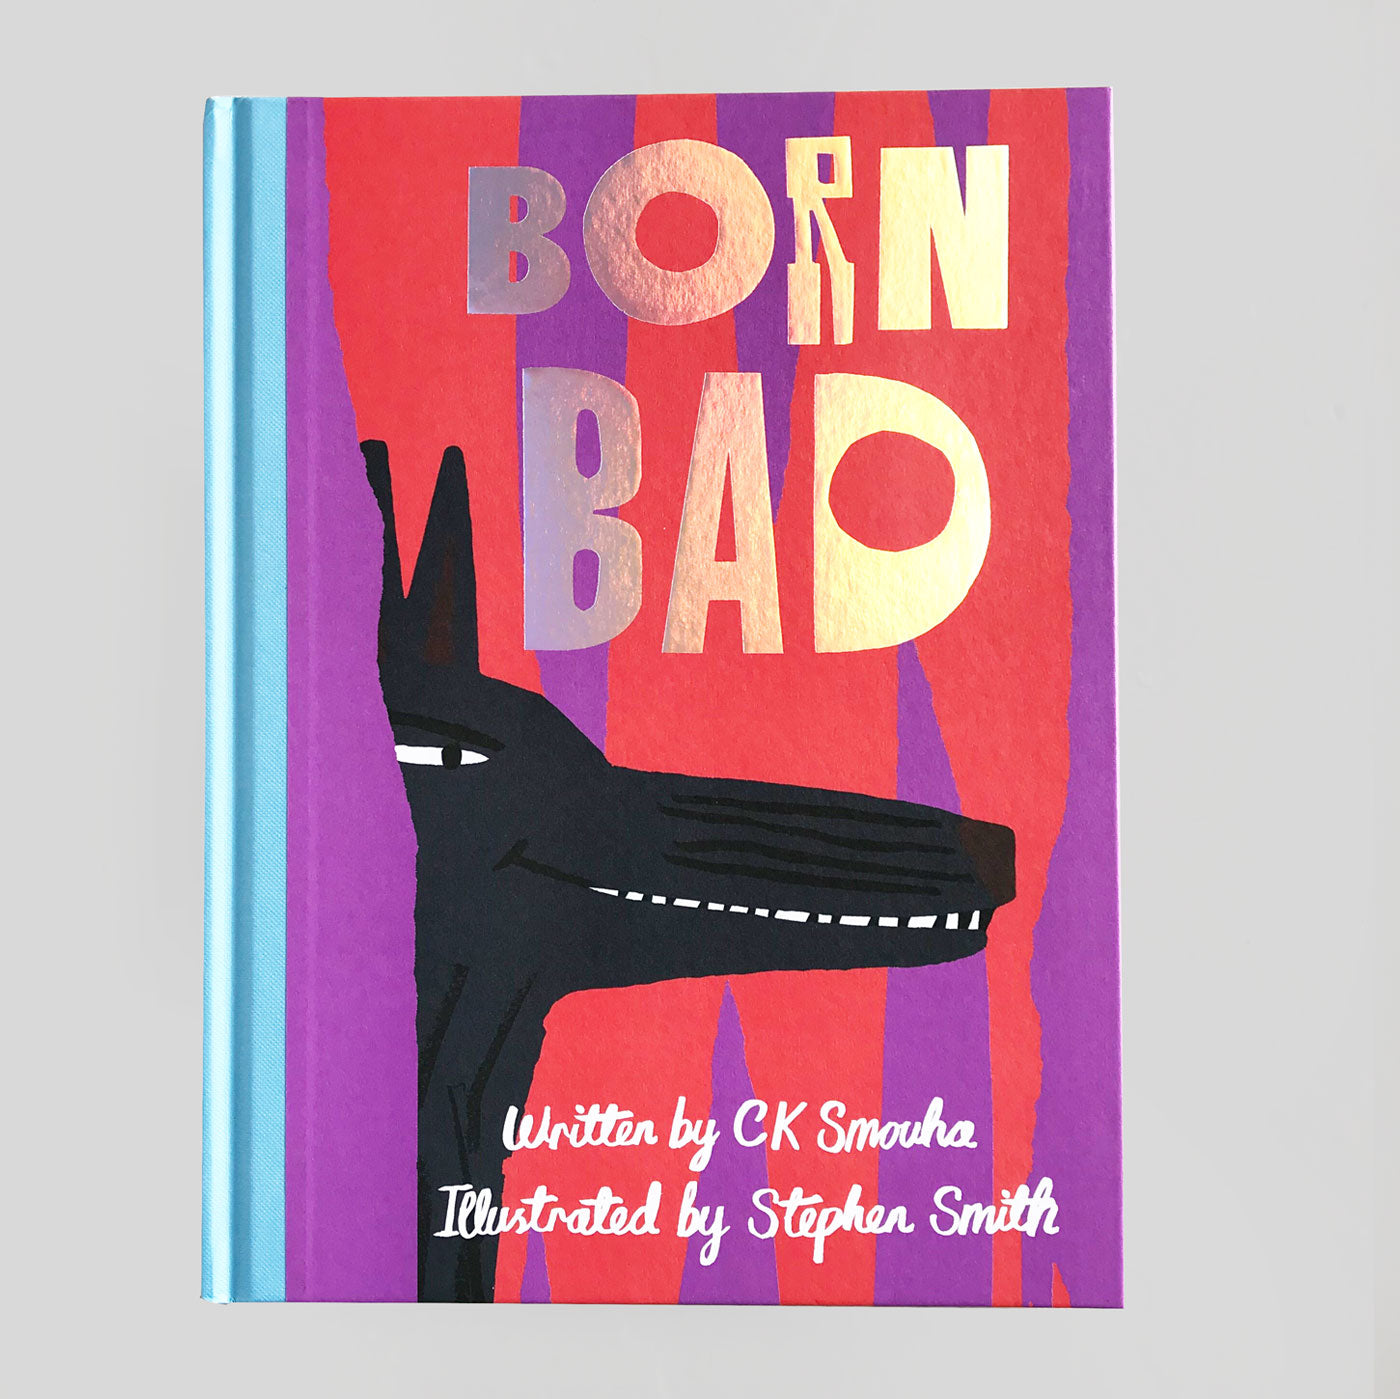 Born Bad by C K Smouha and Stephen Smith